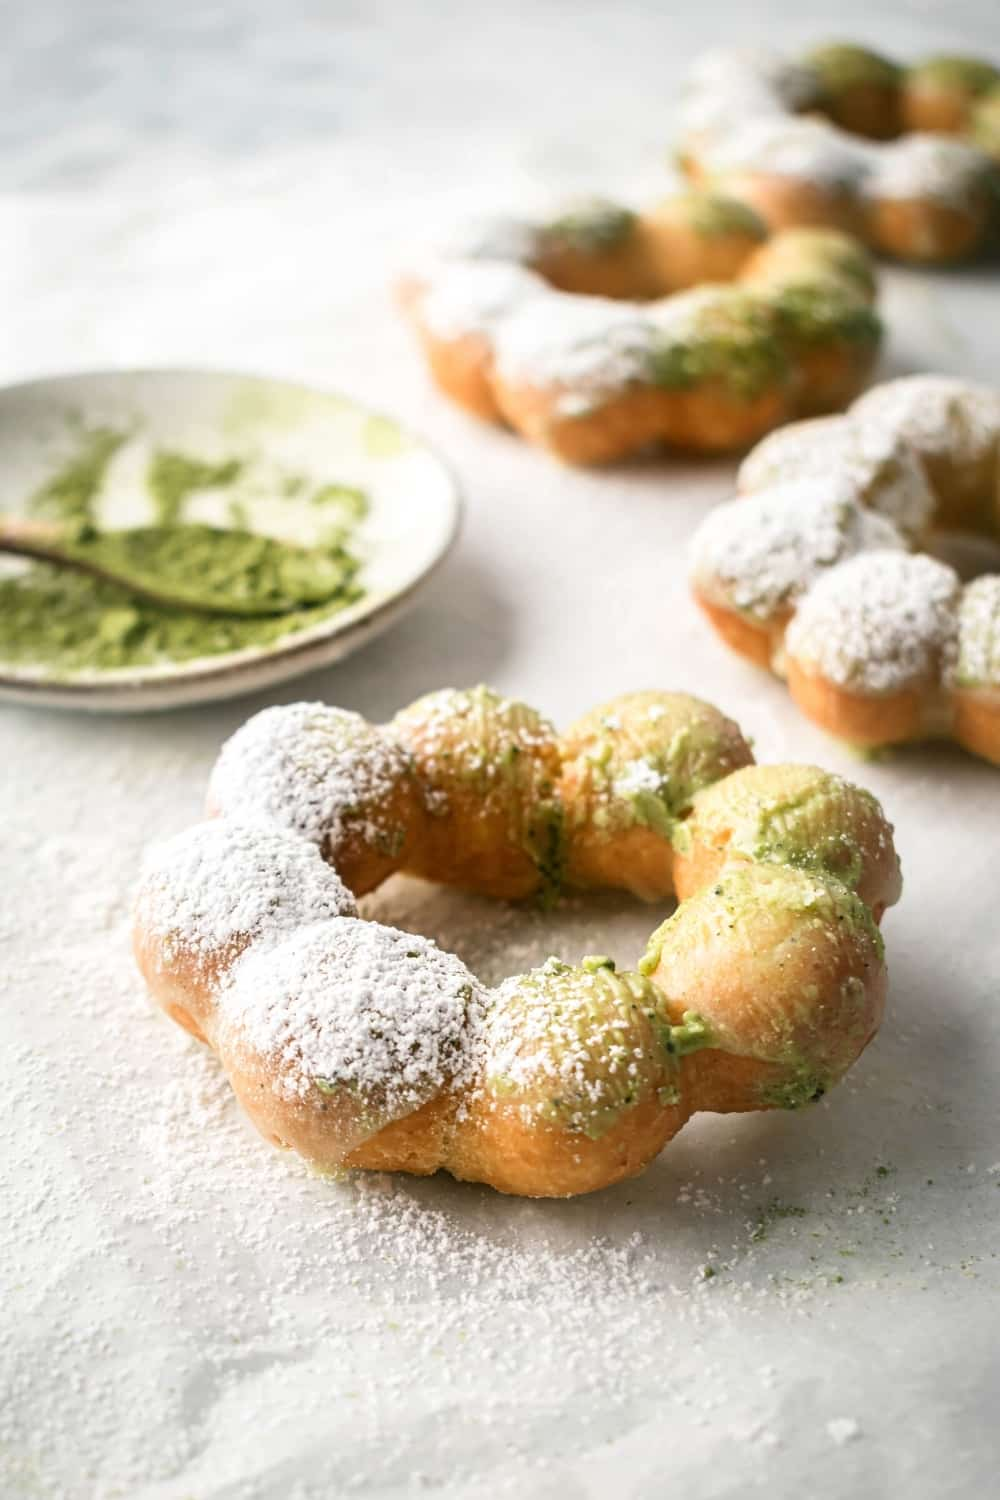 A mochi donut a piece of parchment paper. There are three mochi donuts behind it and a small plate with matcha powder on it.